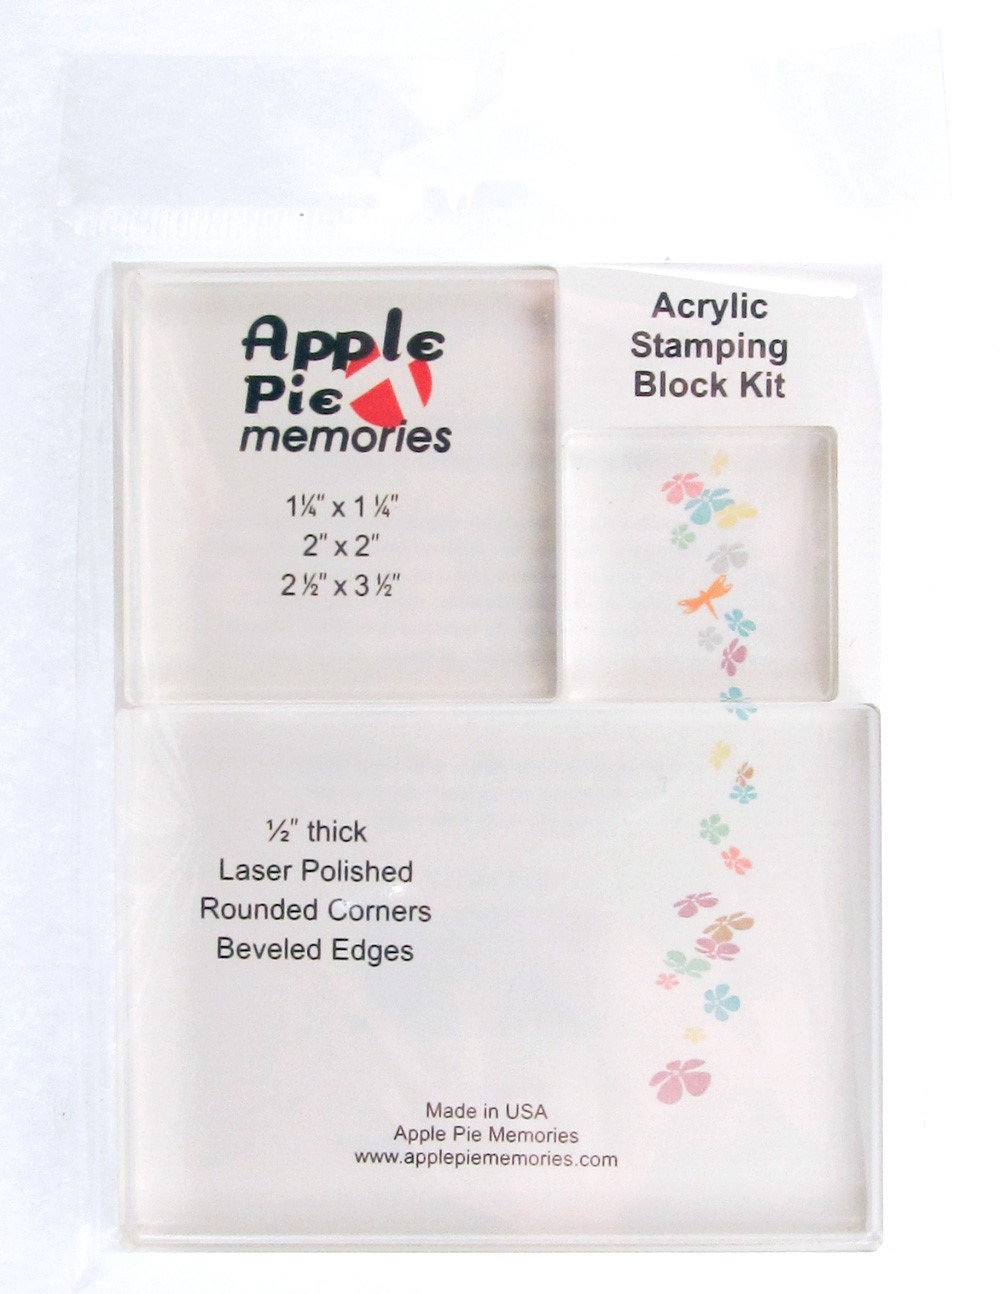 Apple Pie Memories Acrylic Stamp Block with Alignment Grid 3-Inch by 4-Inch by 1//2-Inch Thick